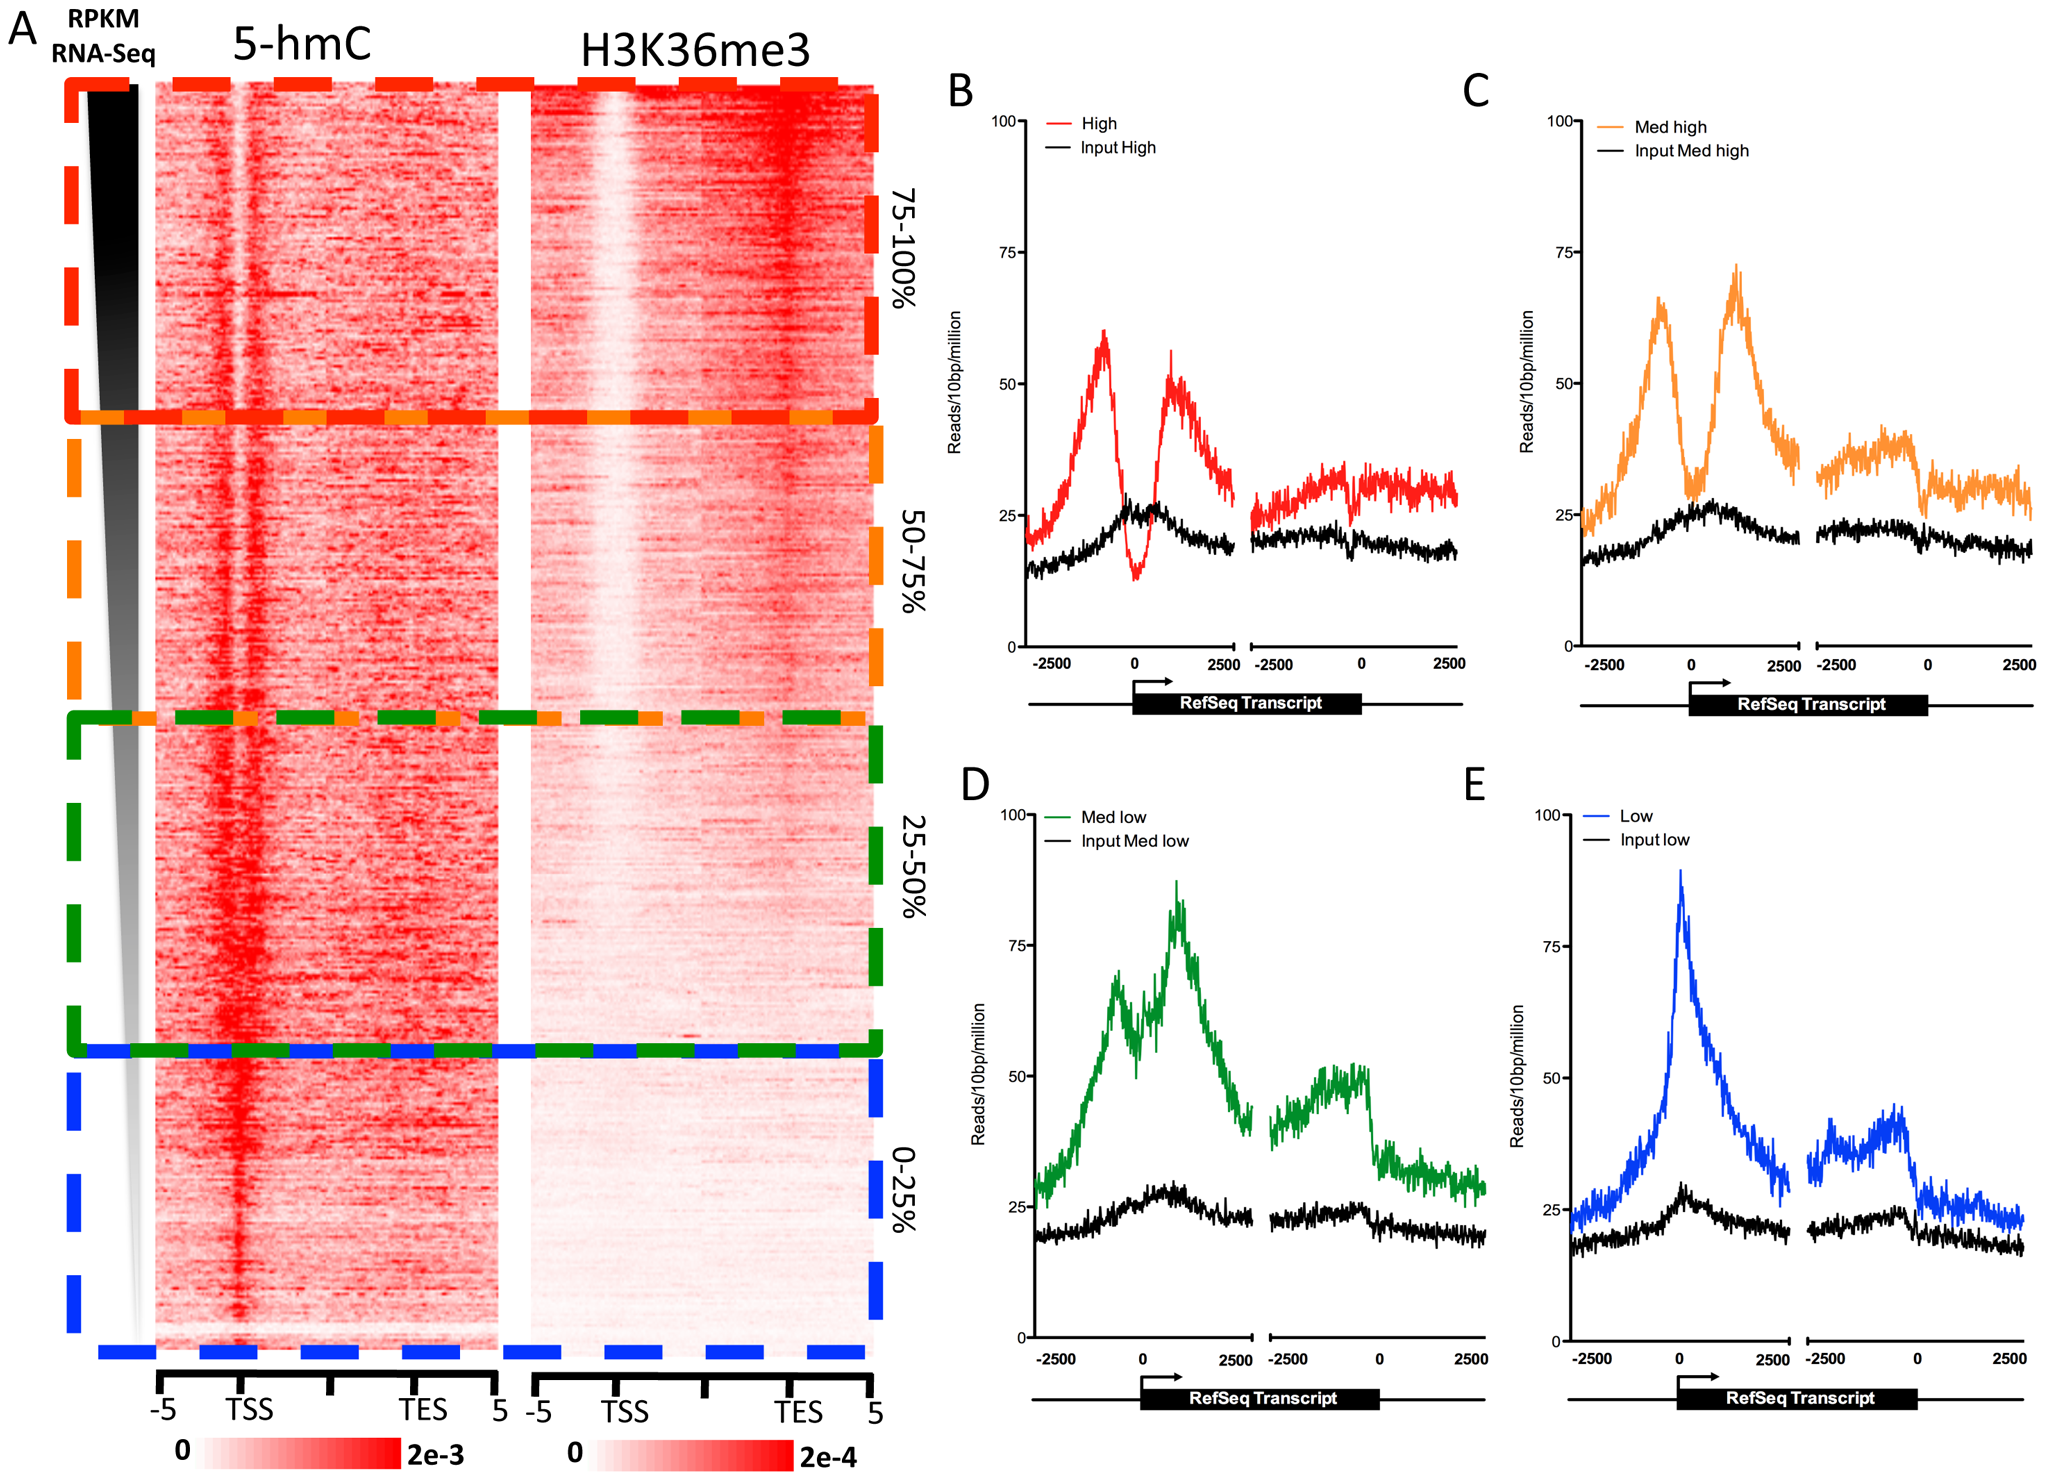 Gene expression level-dependent 5-hmC and H3K36me3 distributions in human ES cells.